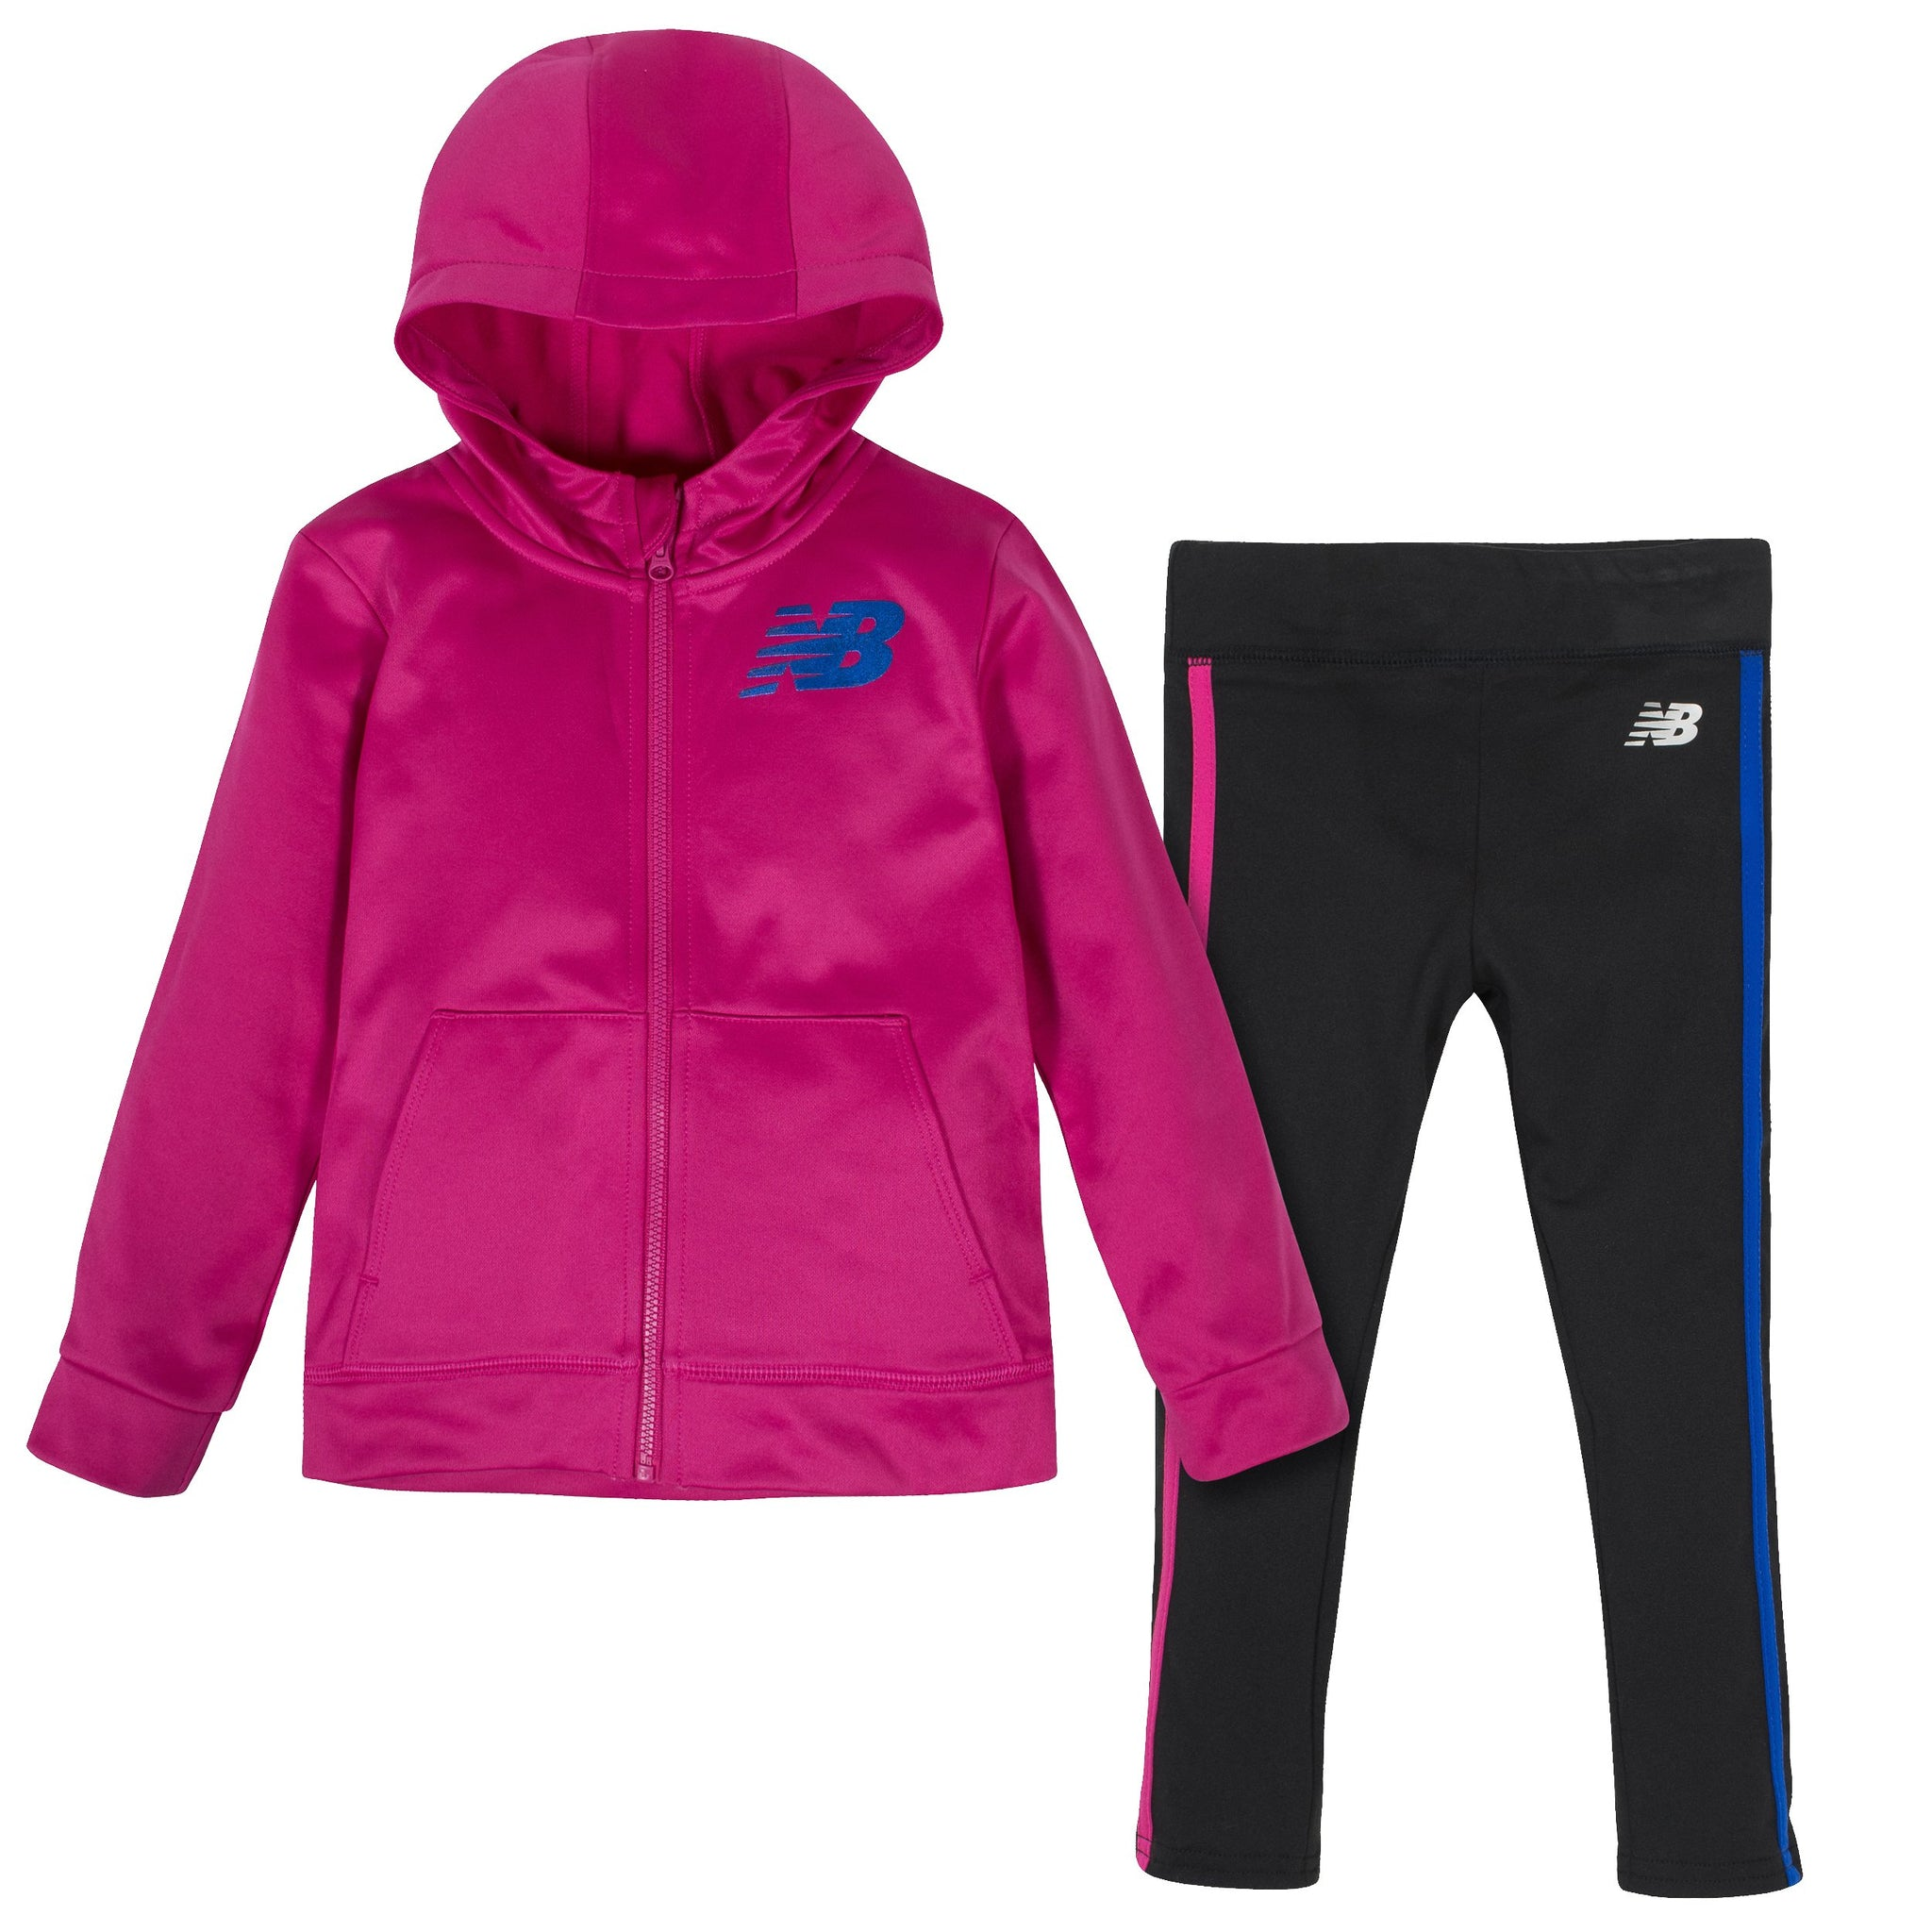 2-Piece New Balance Girls' Carnival Pink and Black Fleece Hooded Jacket and Tight Set